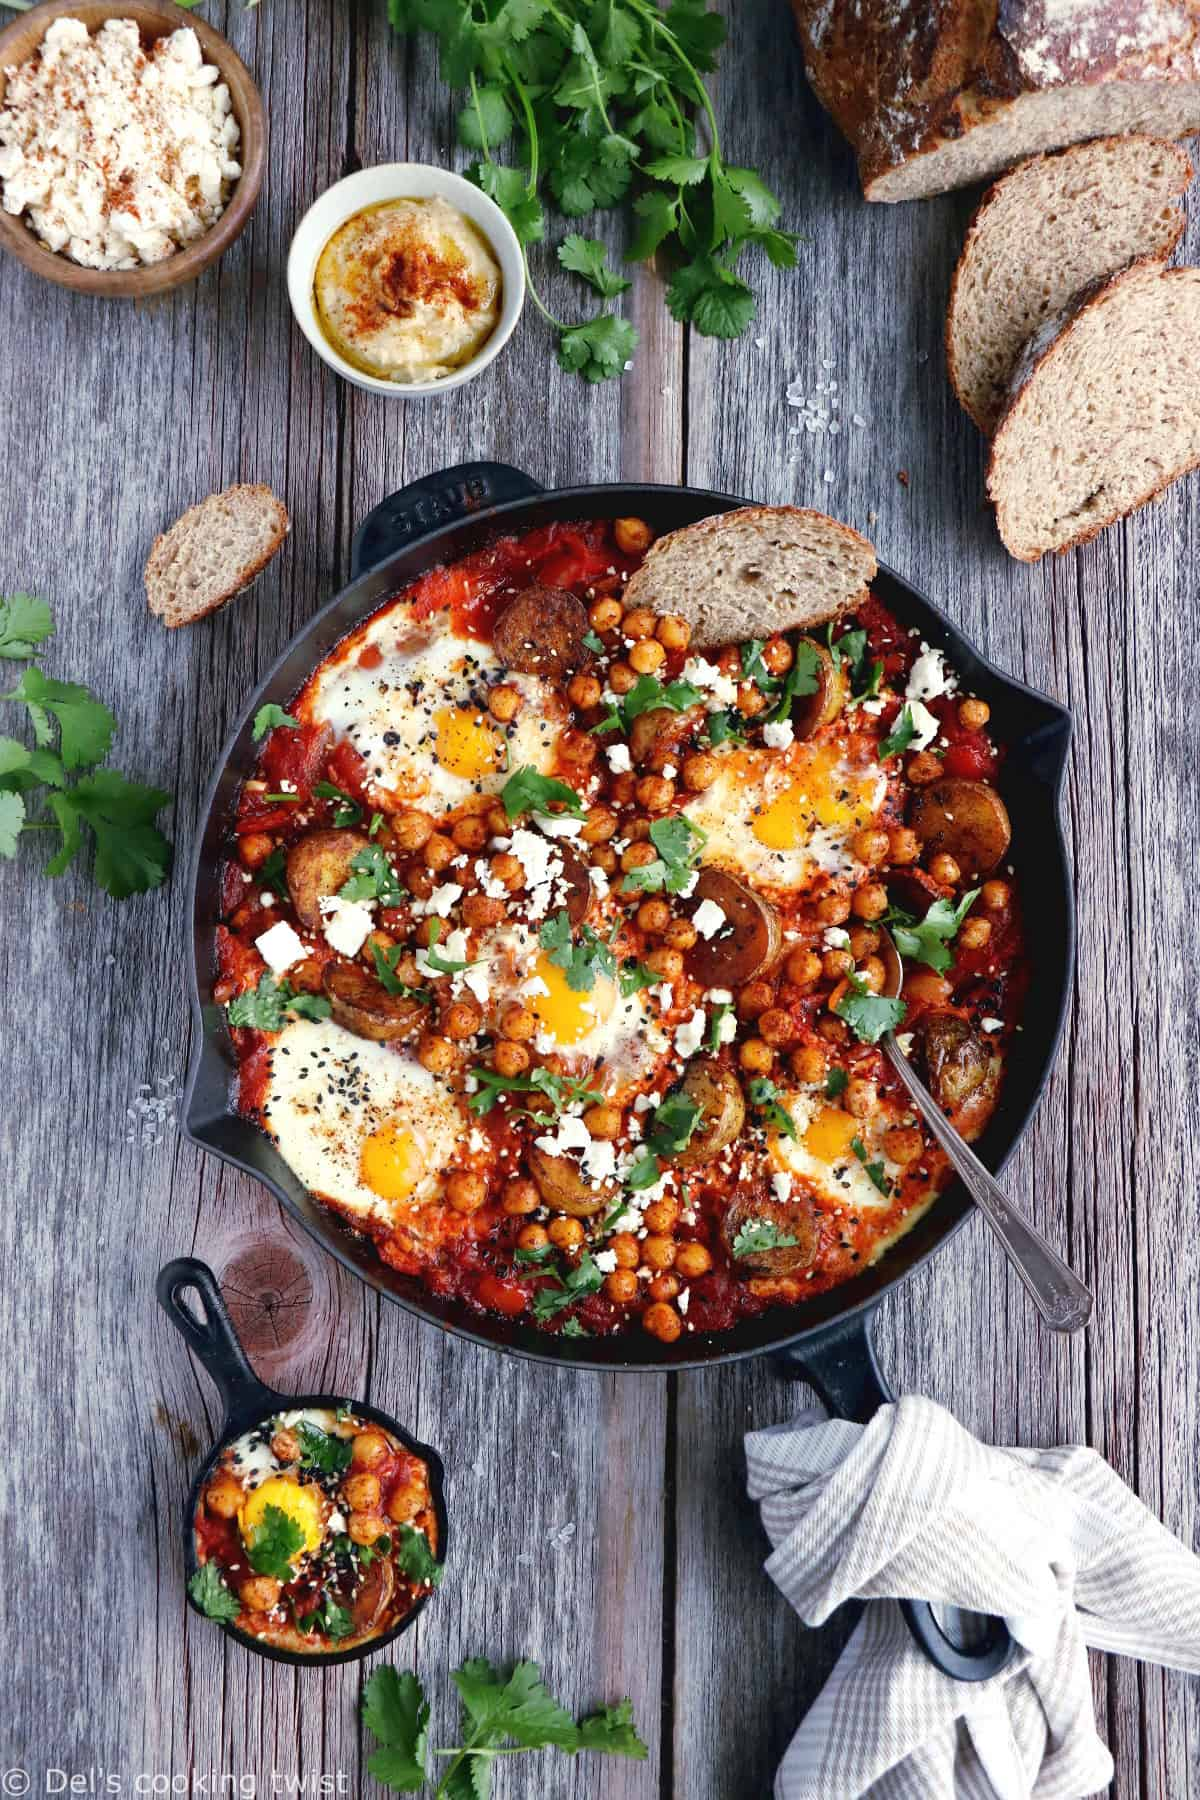 Take the shakshuka to the next level with this deluxe shakshuka recipe, featuring the classic baked eggs and tomatoes with an extra kick of spicy roasted potatoes and chickpeas.